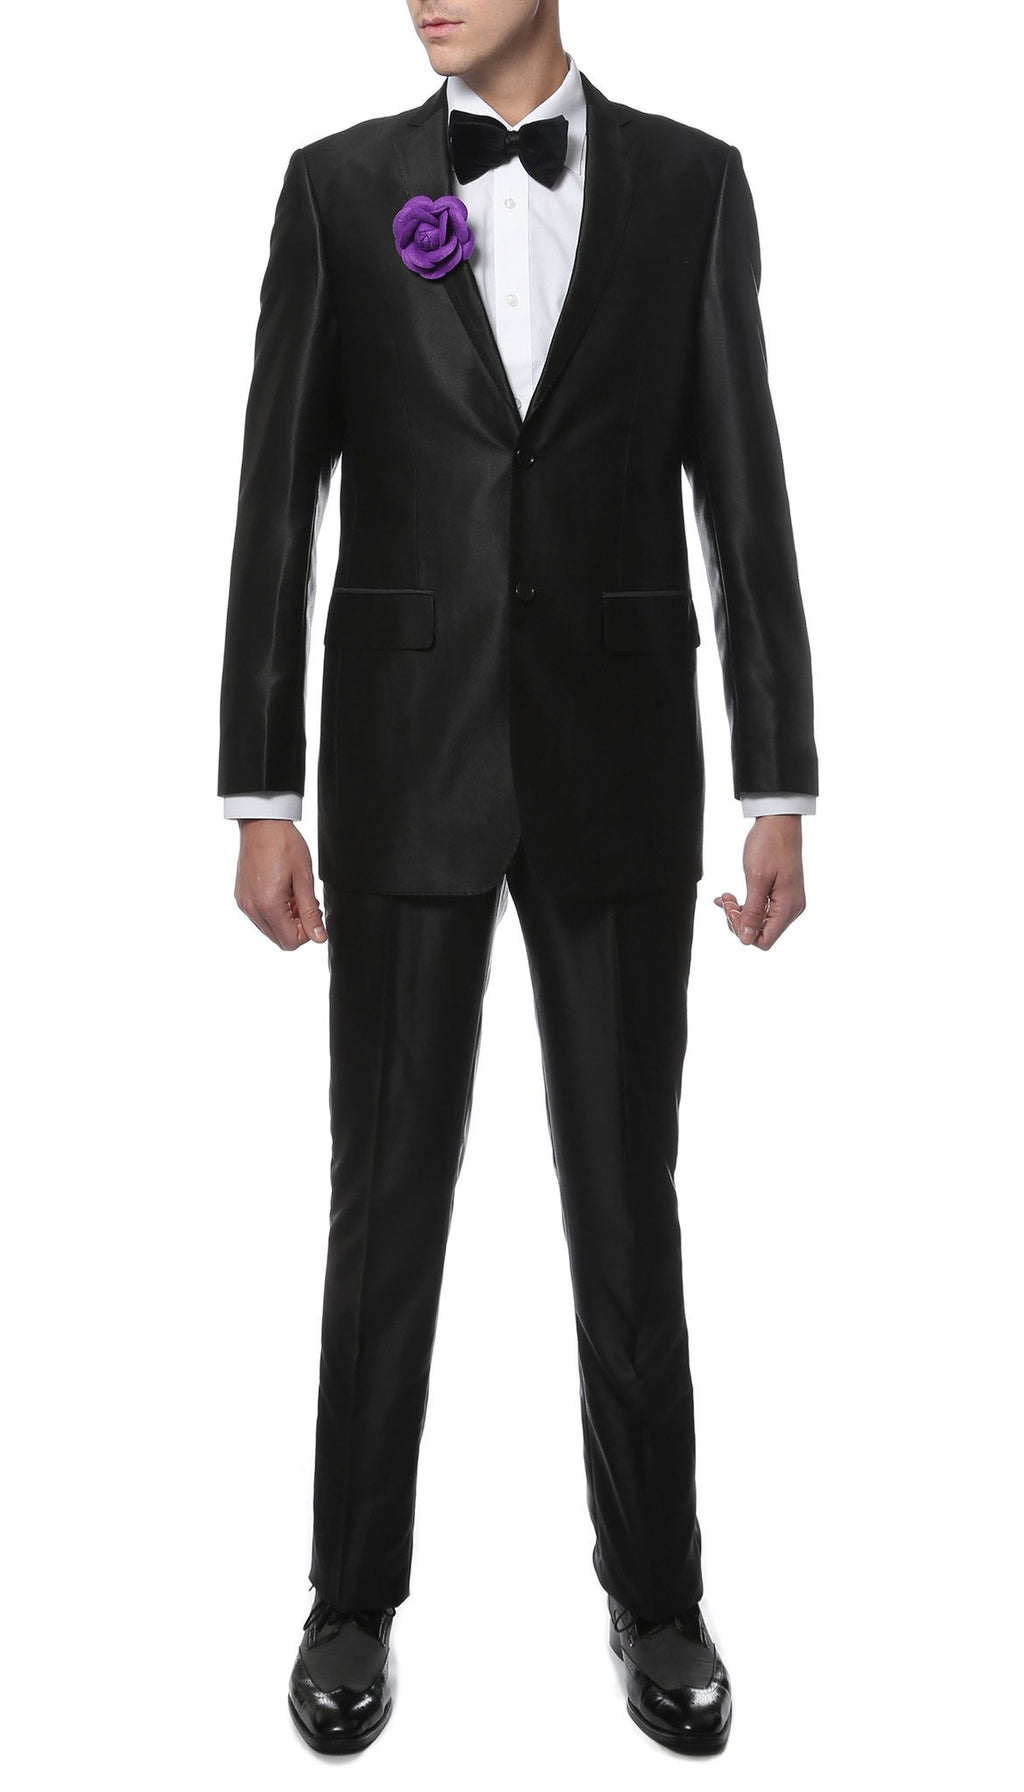 Oxford Black Sharkskin Slim Fit Suit - Giorgio's Menswear